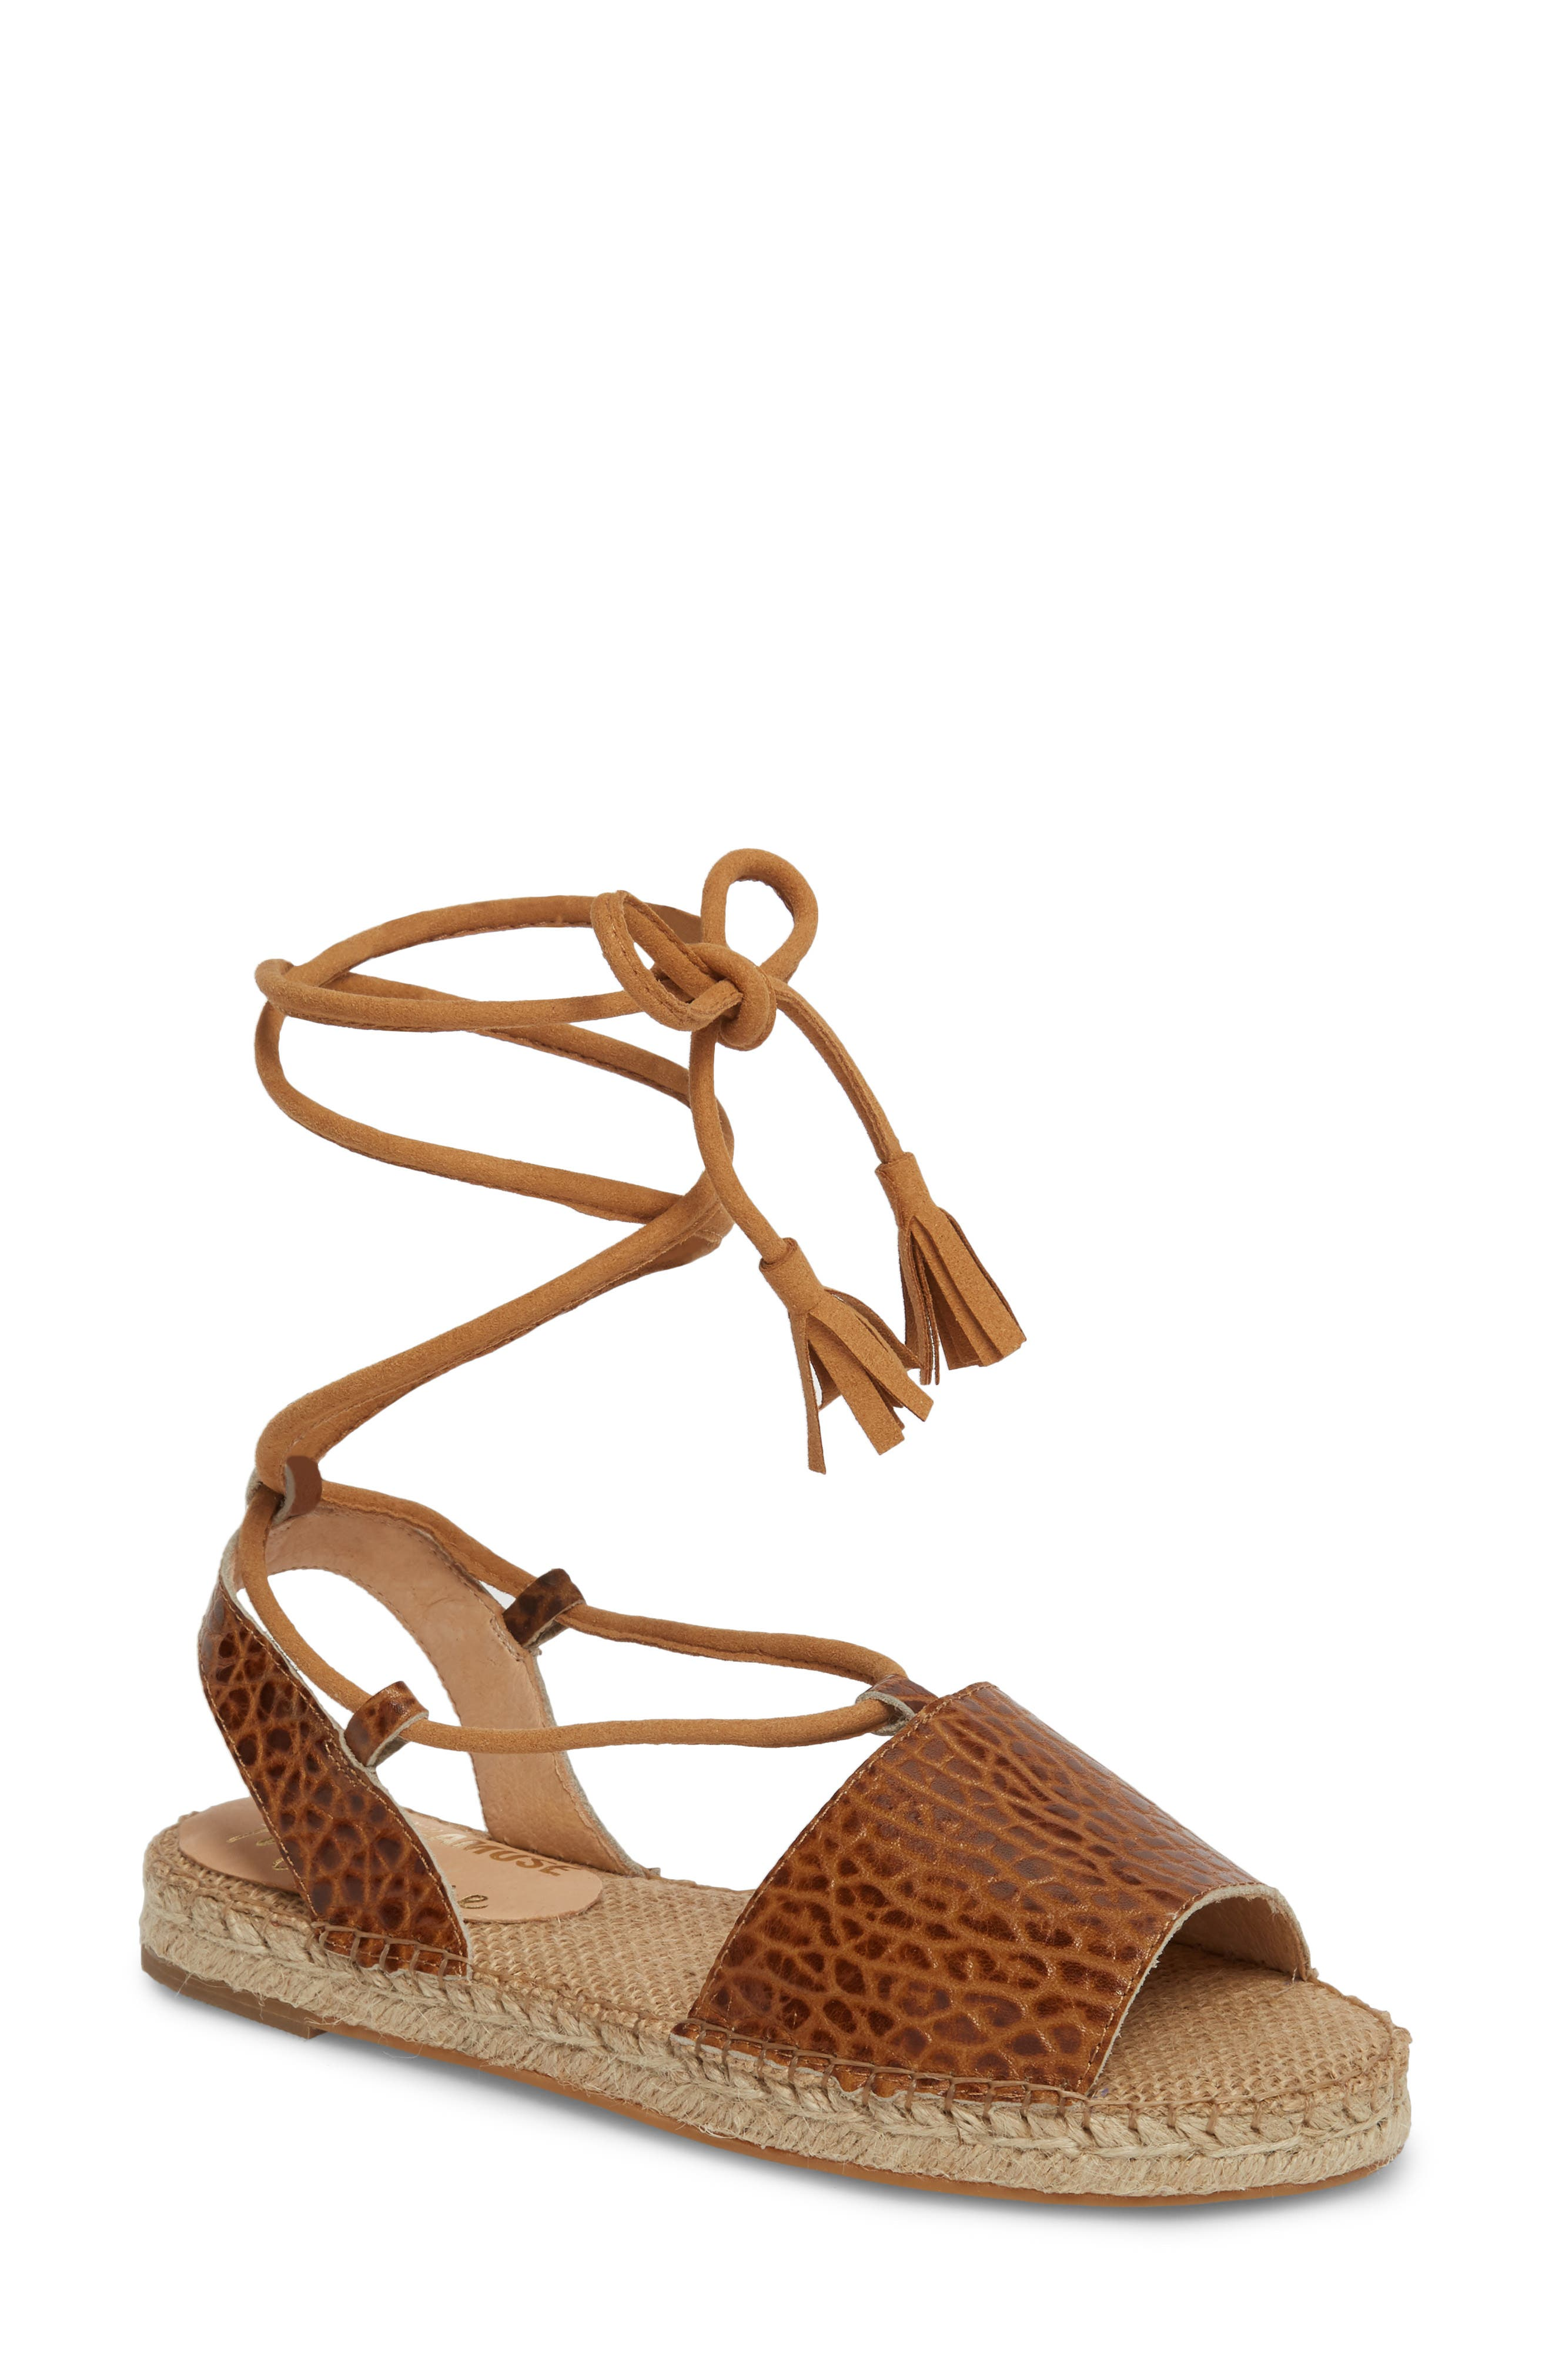 Amuse Society x Matisse La Vita Sandal,                             Main thumbnail 1, color,                             Tan Leather